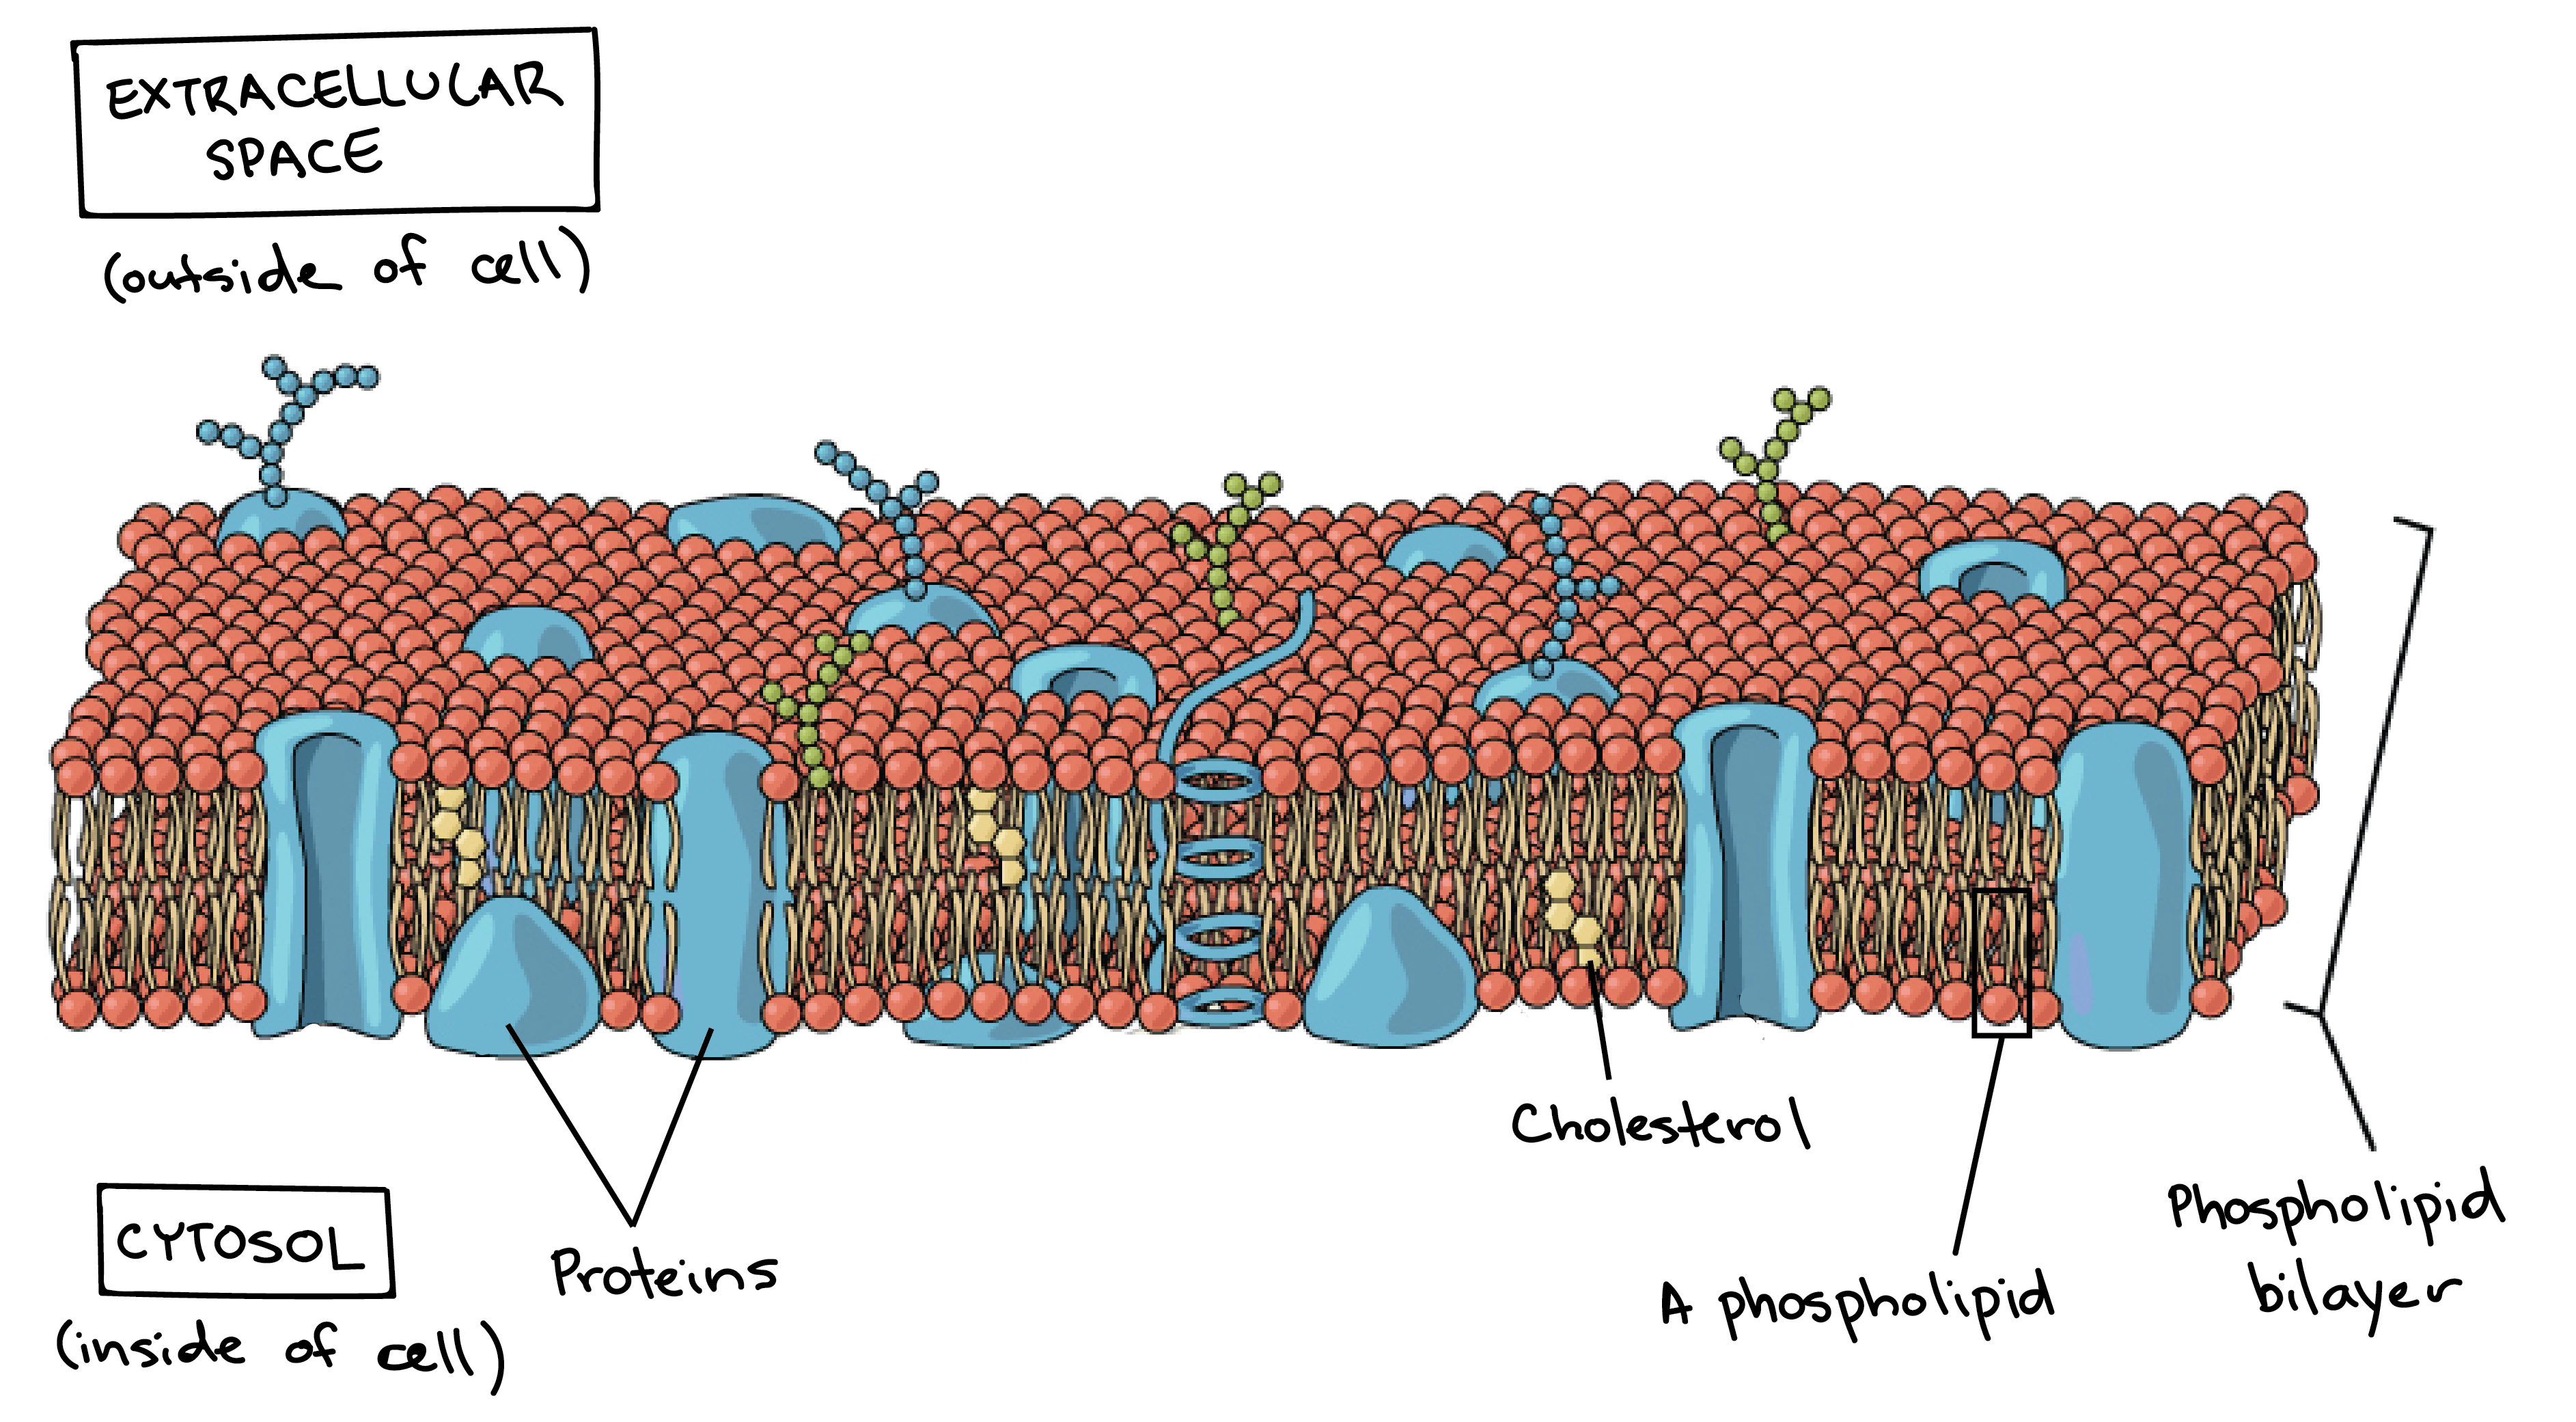 Plasma membrane of any cell